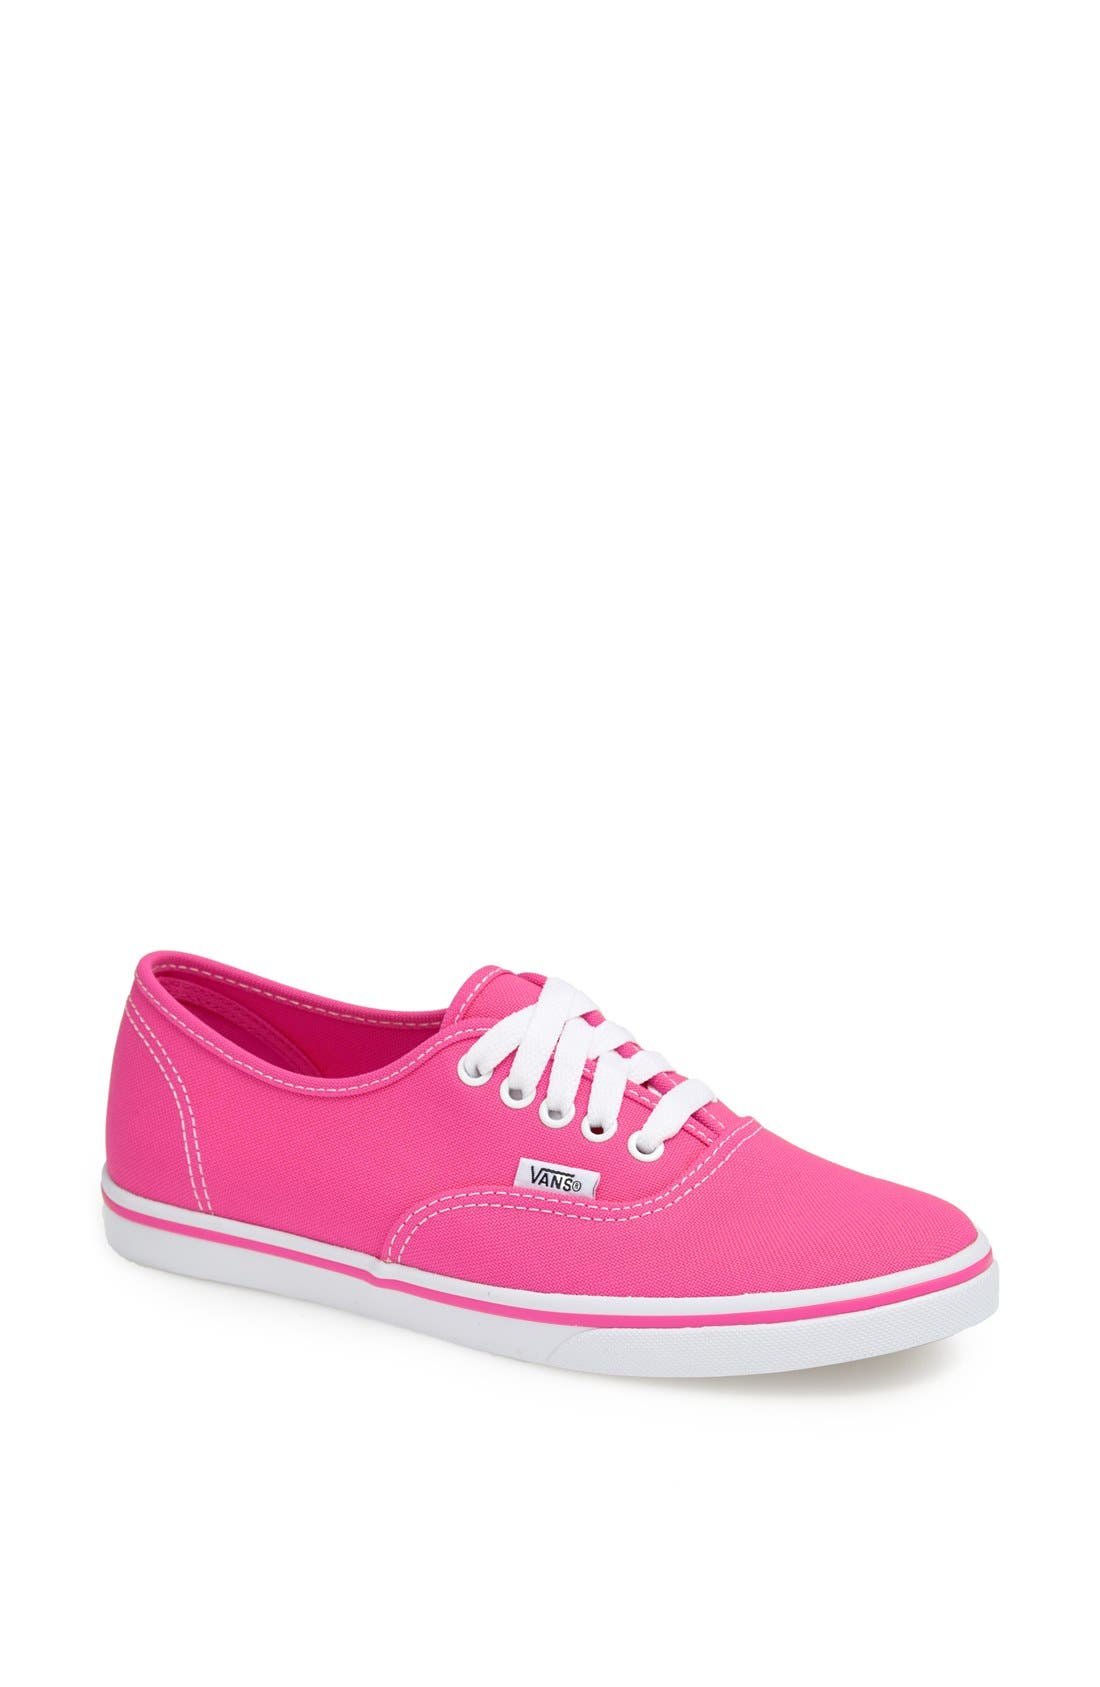 Main Image - Vans 'Authentic - Lo Pro' Sneaker (Women)